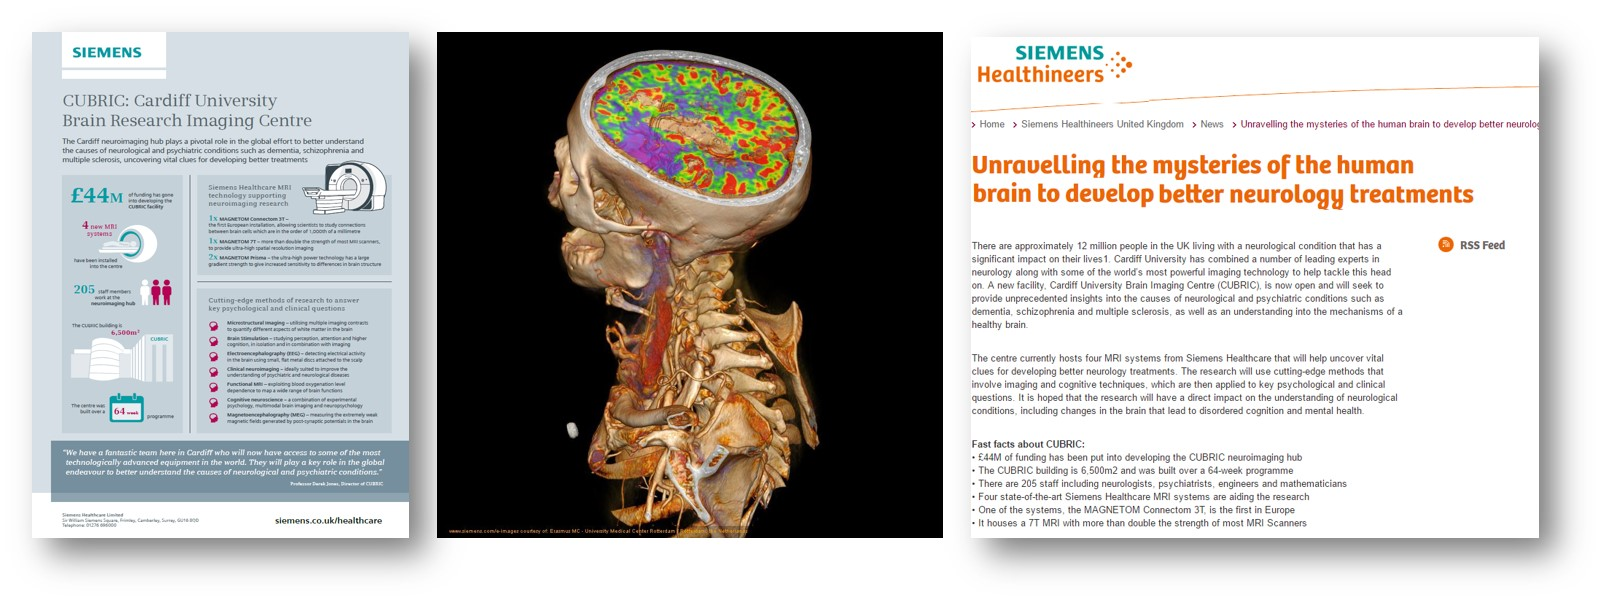 Medical Imaging case study image